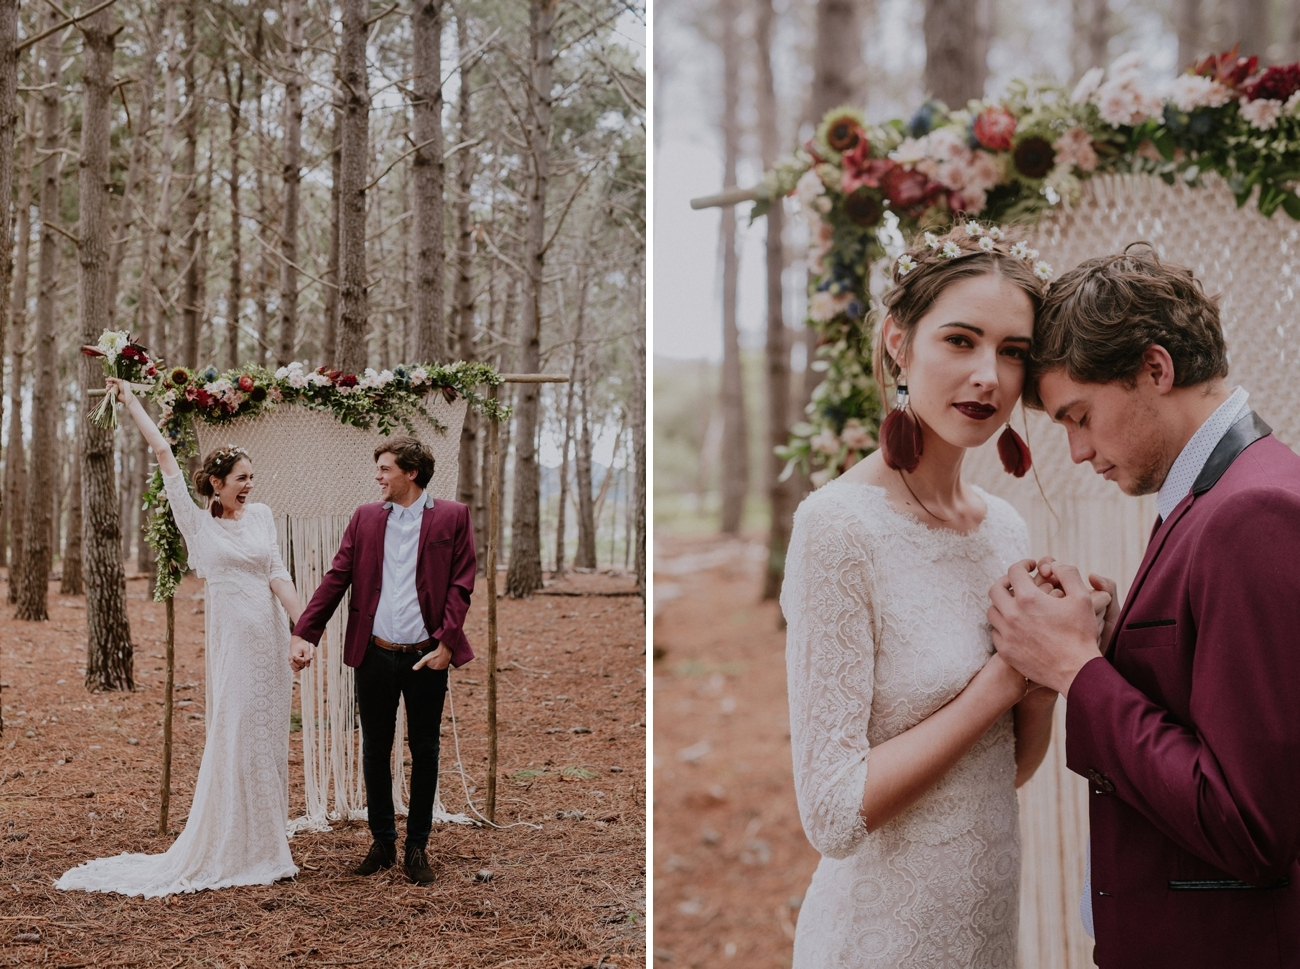 Forest Wedding Ceremony | Credit: Lad & Lass Photography